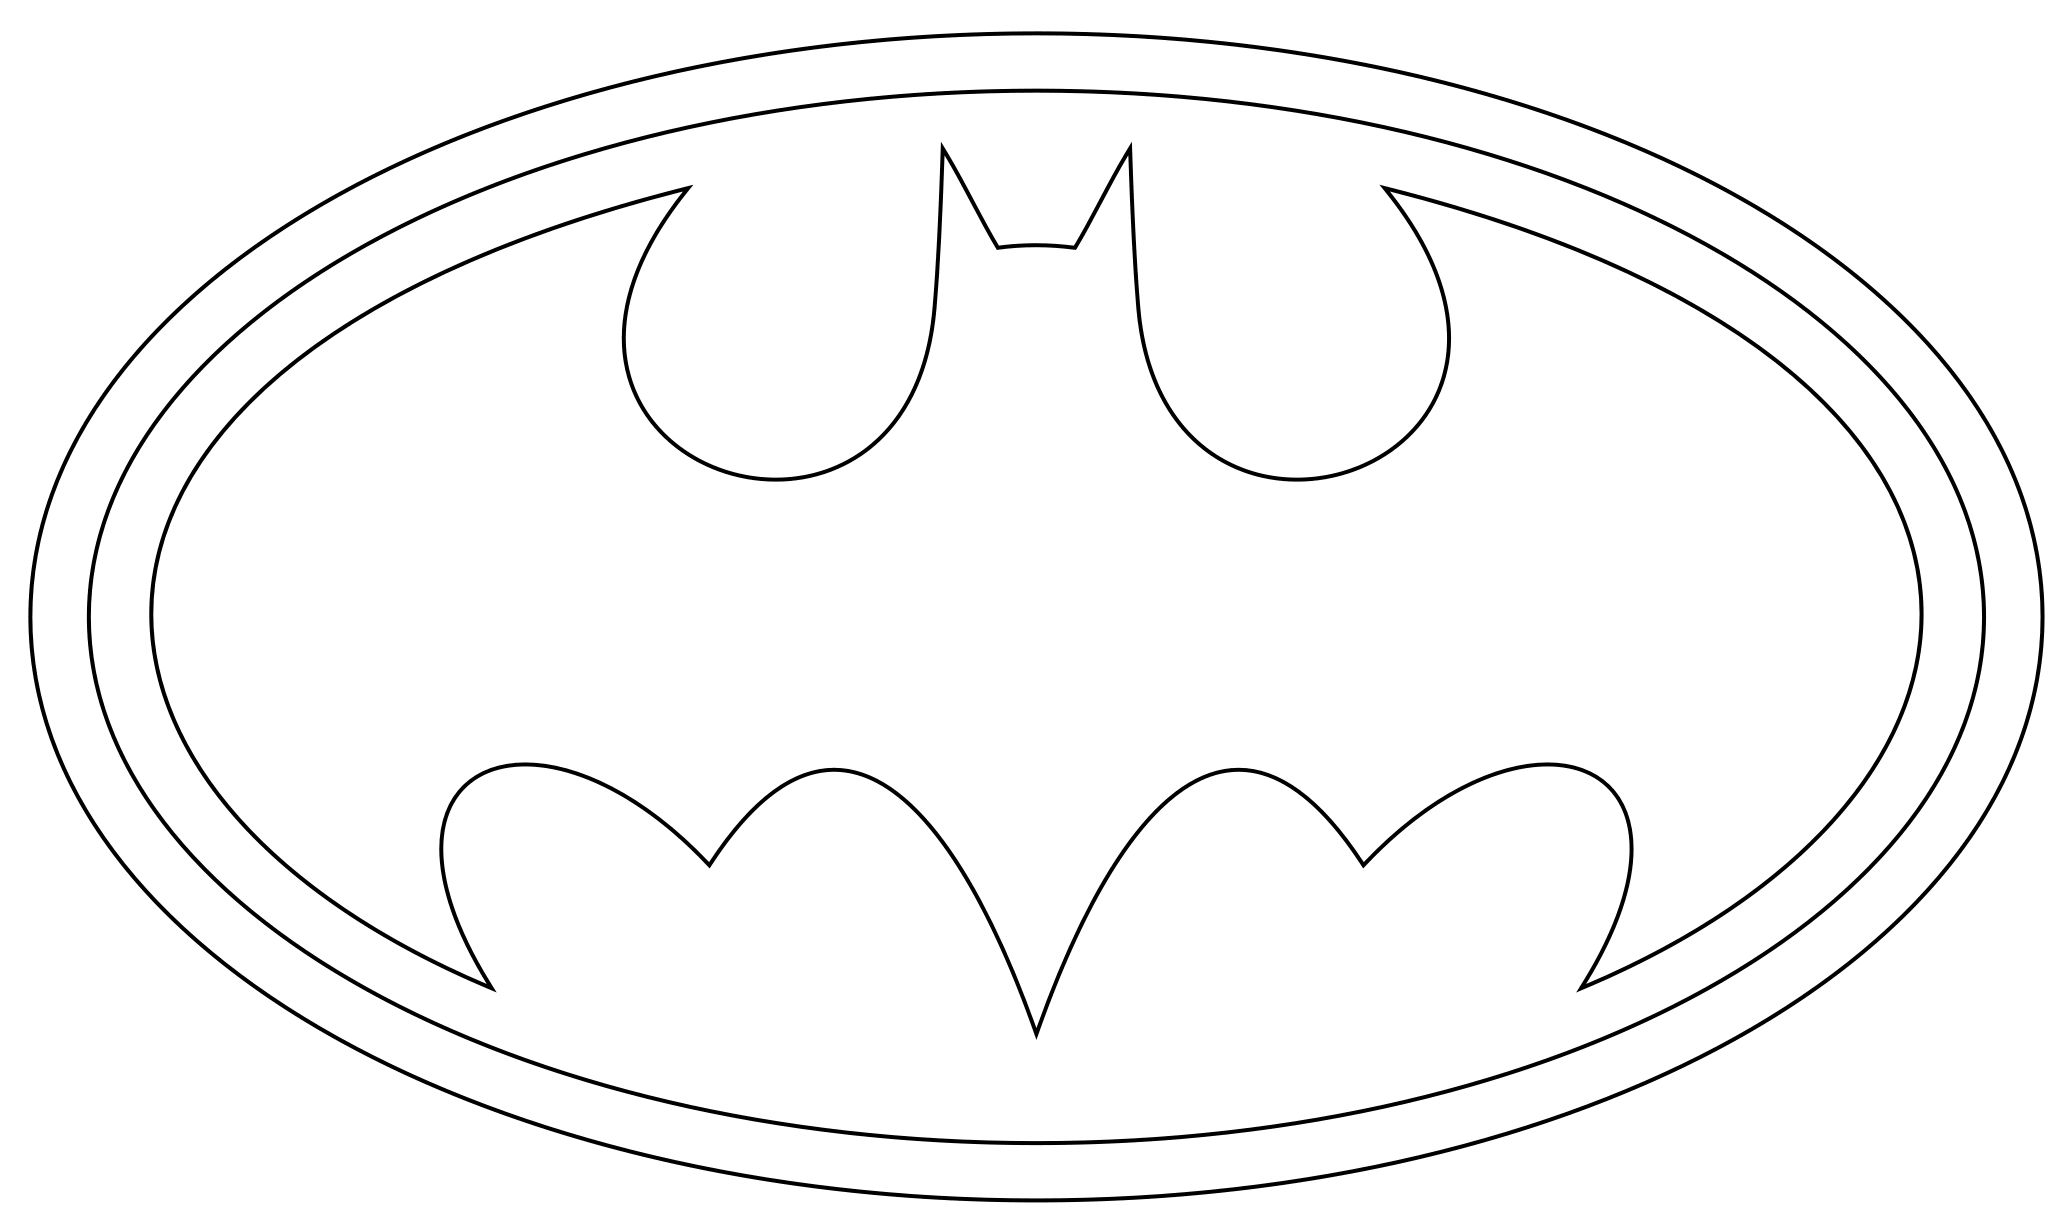 Old Fashioned image intended for free printable batman logo coloring pages